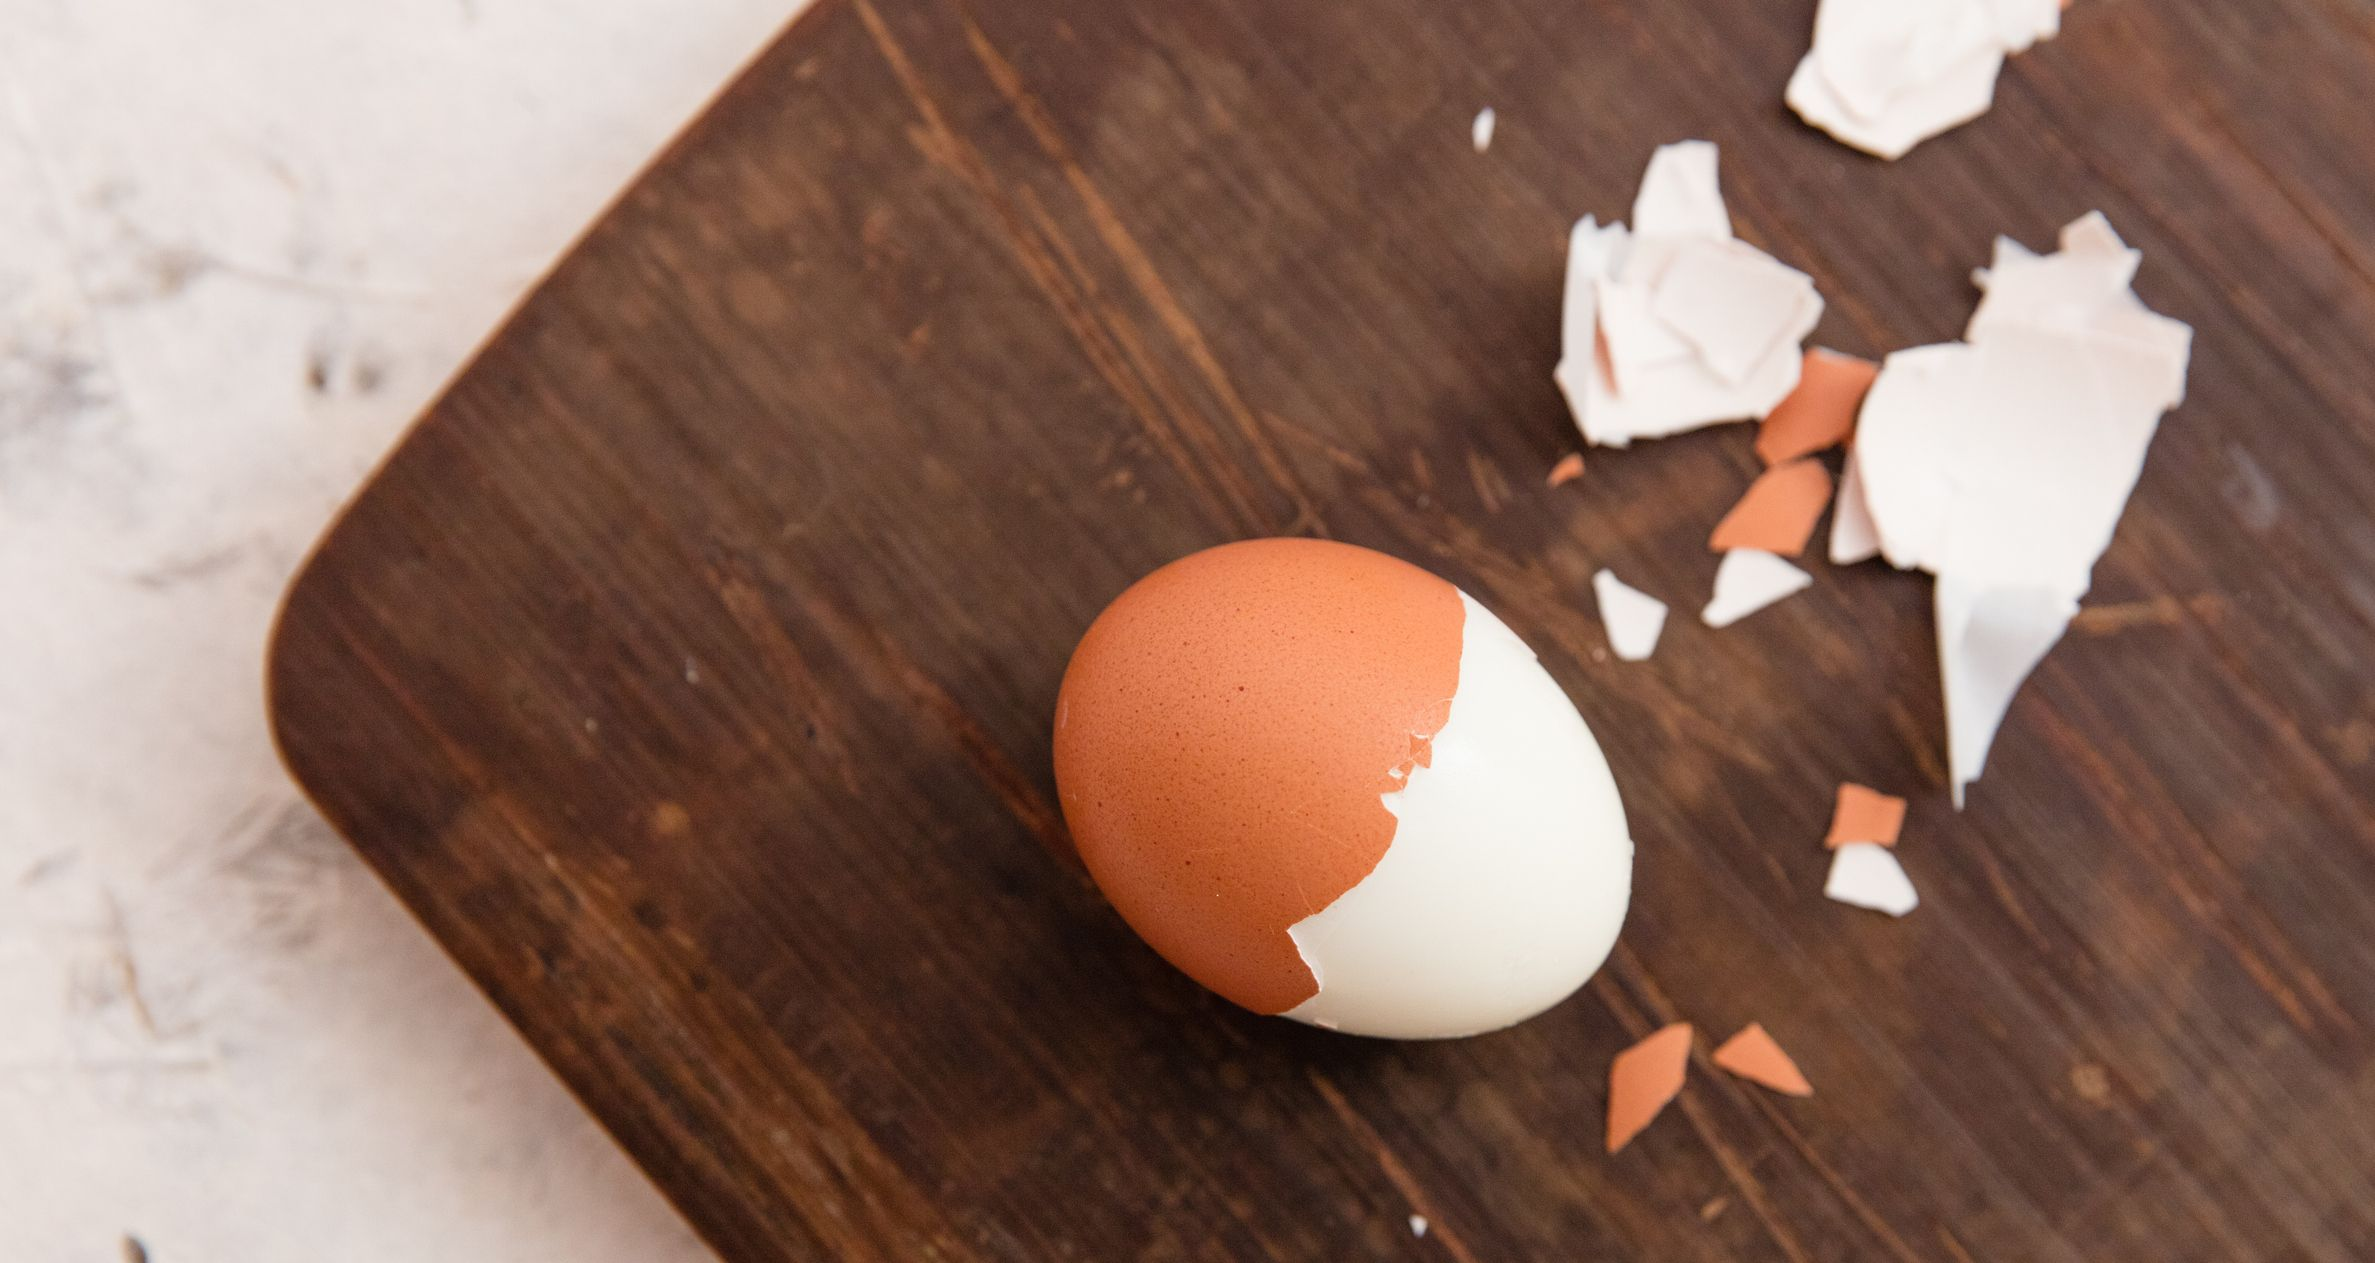 Can you peel hard boiled eggs the day before